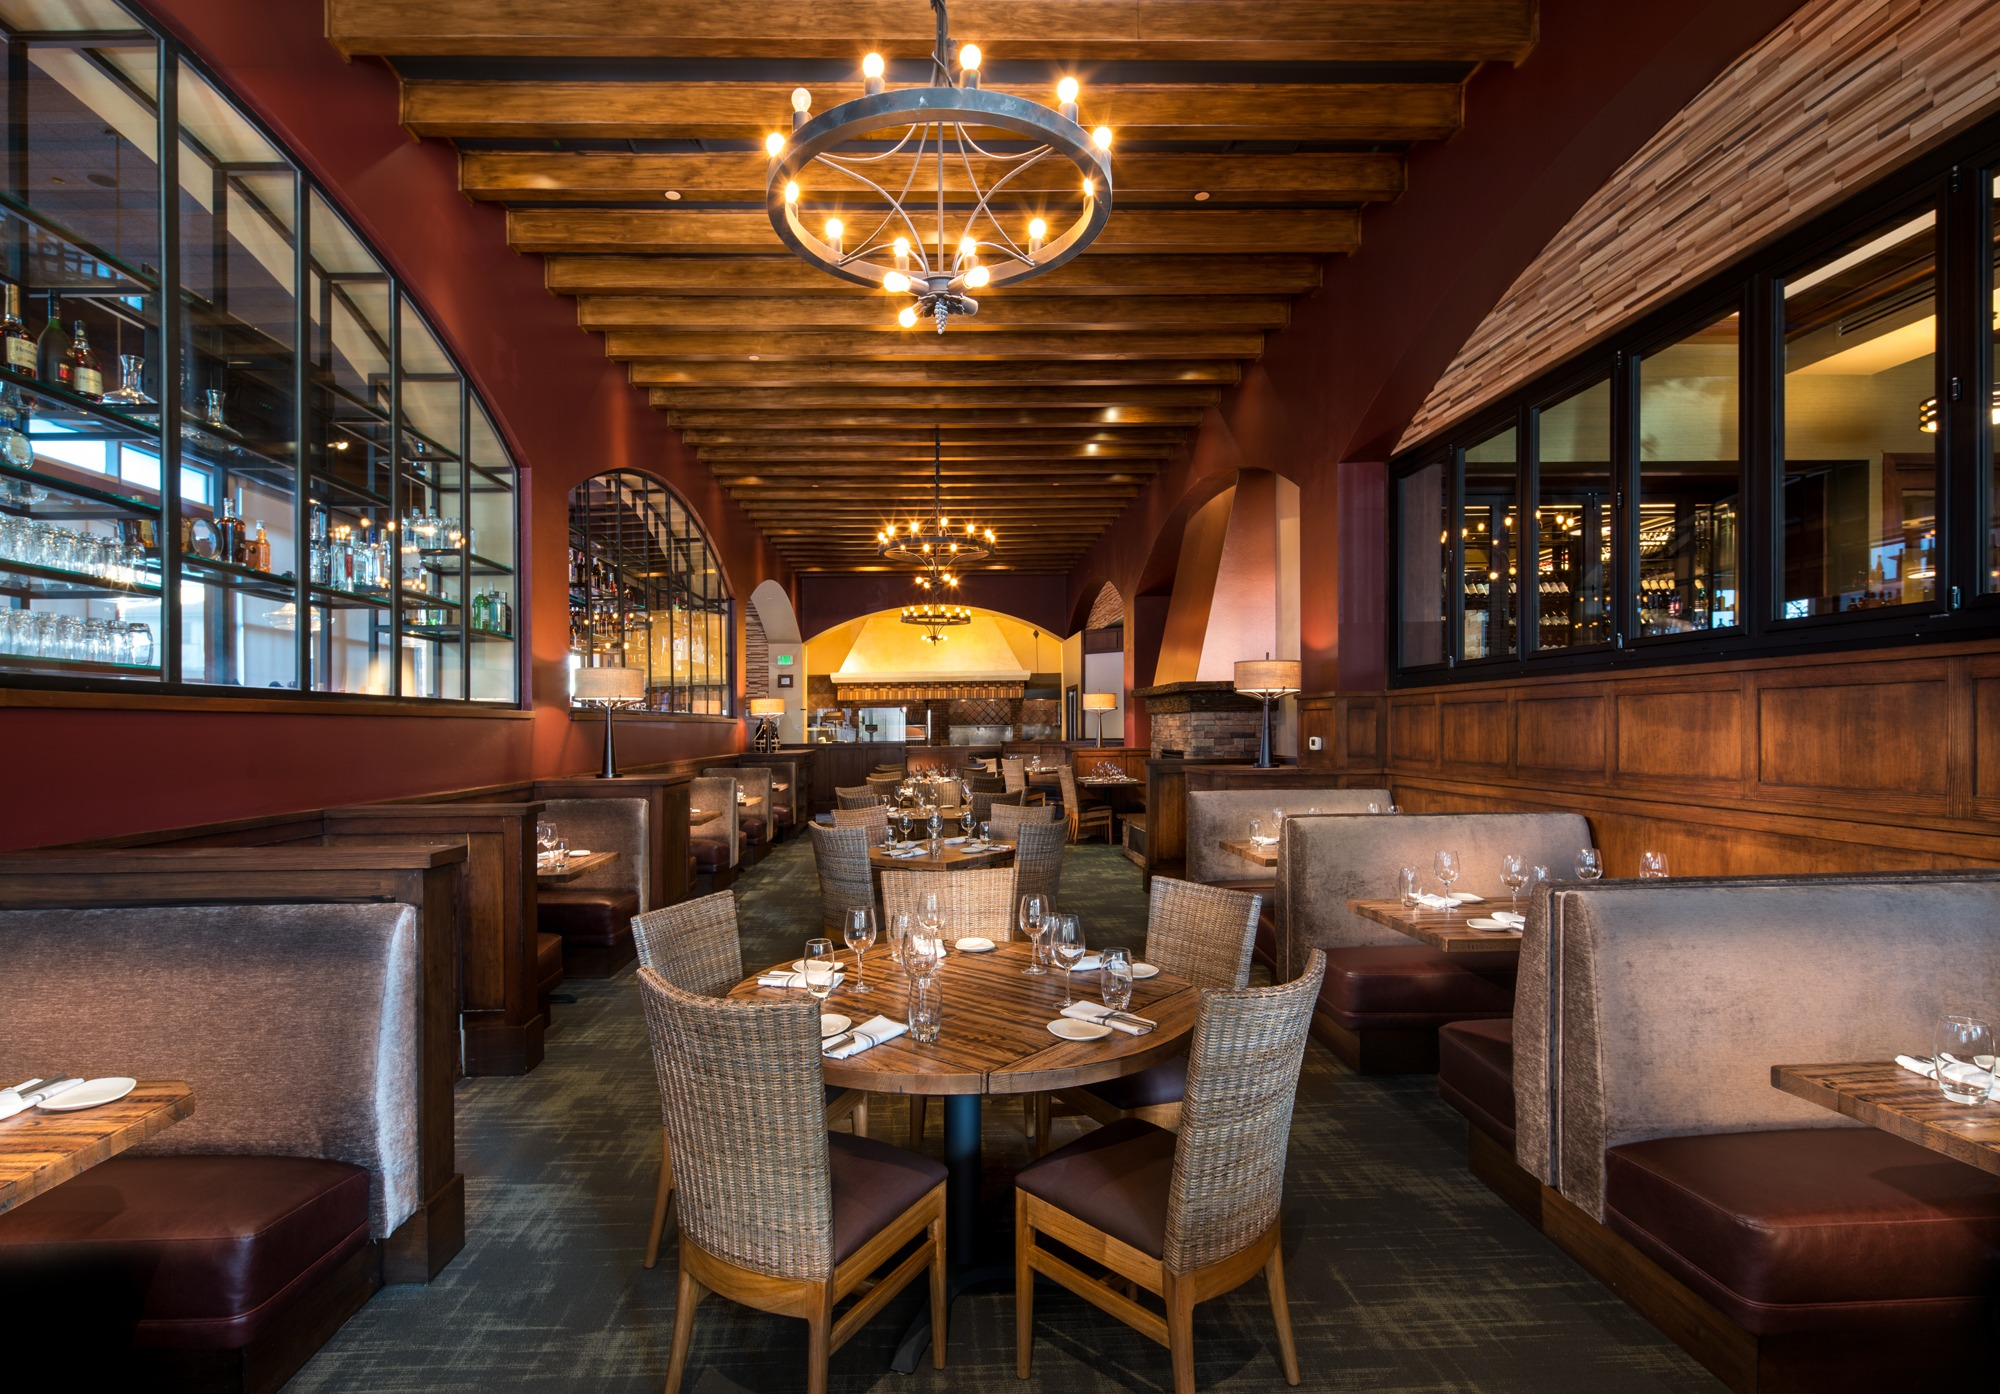 Westwood Upscale American Restaurant Napa Valley Grille